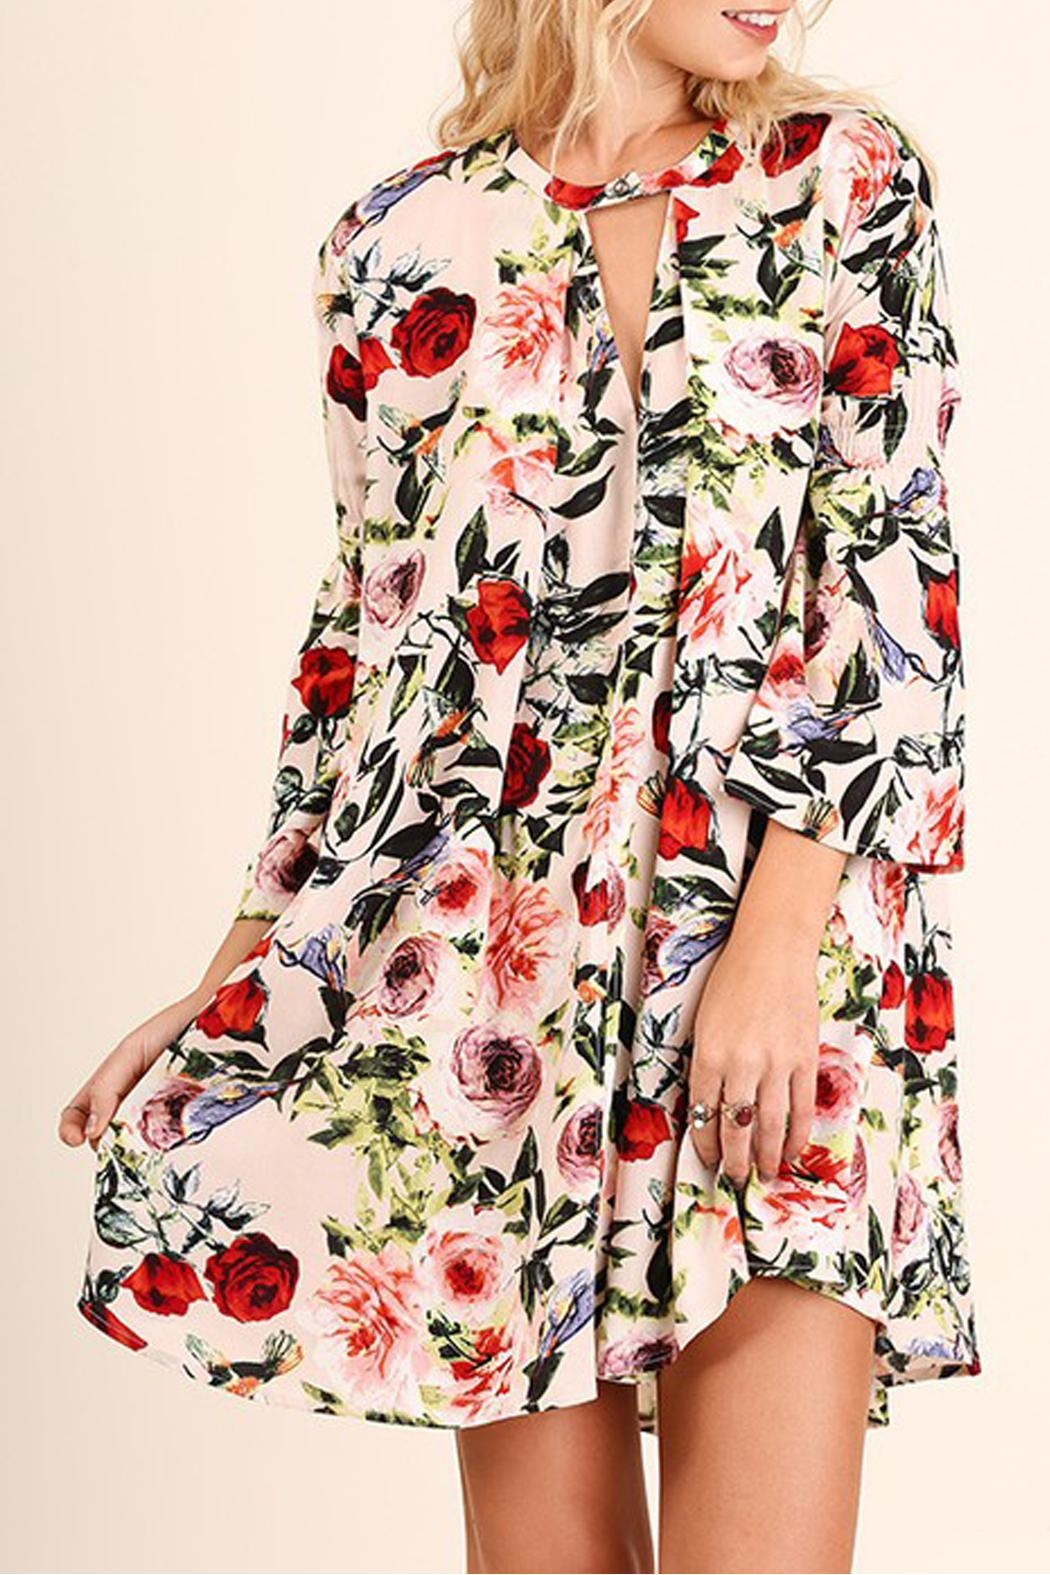 Umgee USA Floral Print Swing Dress - Main Image